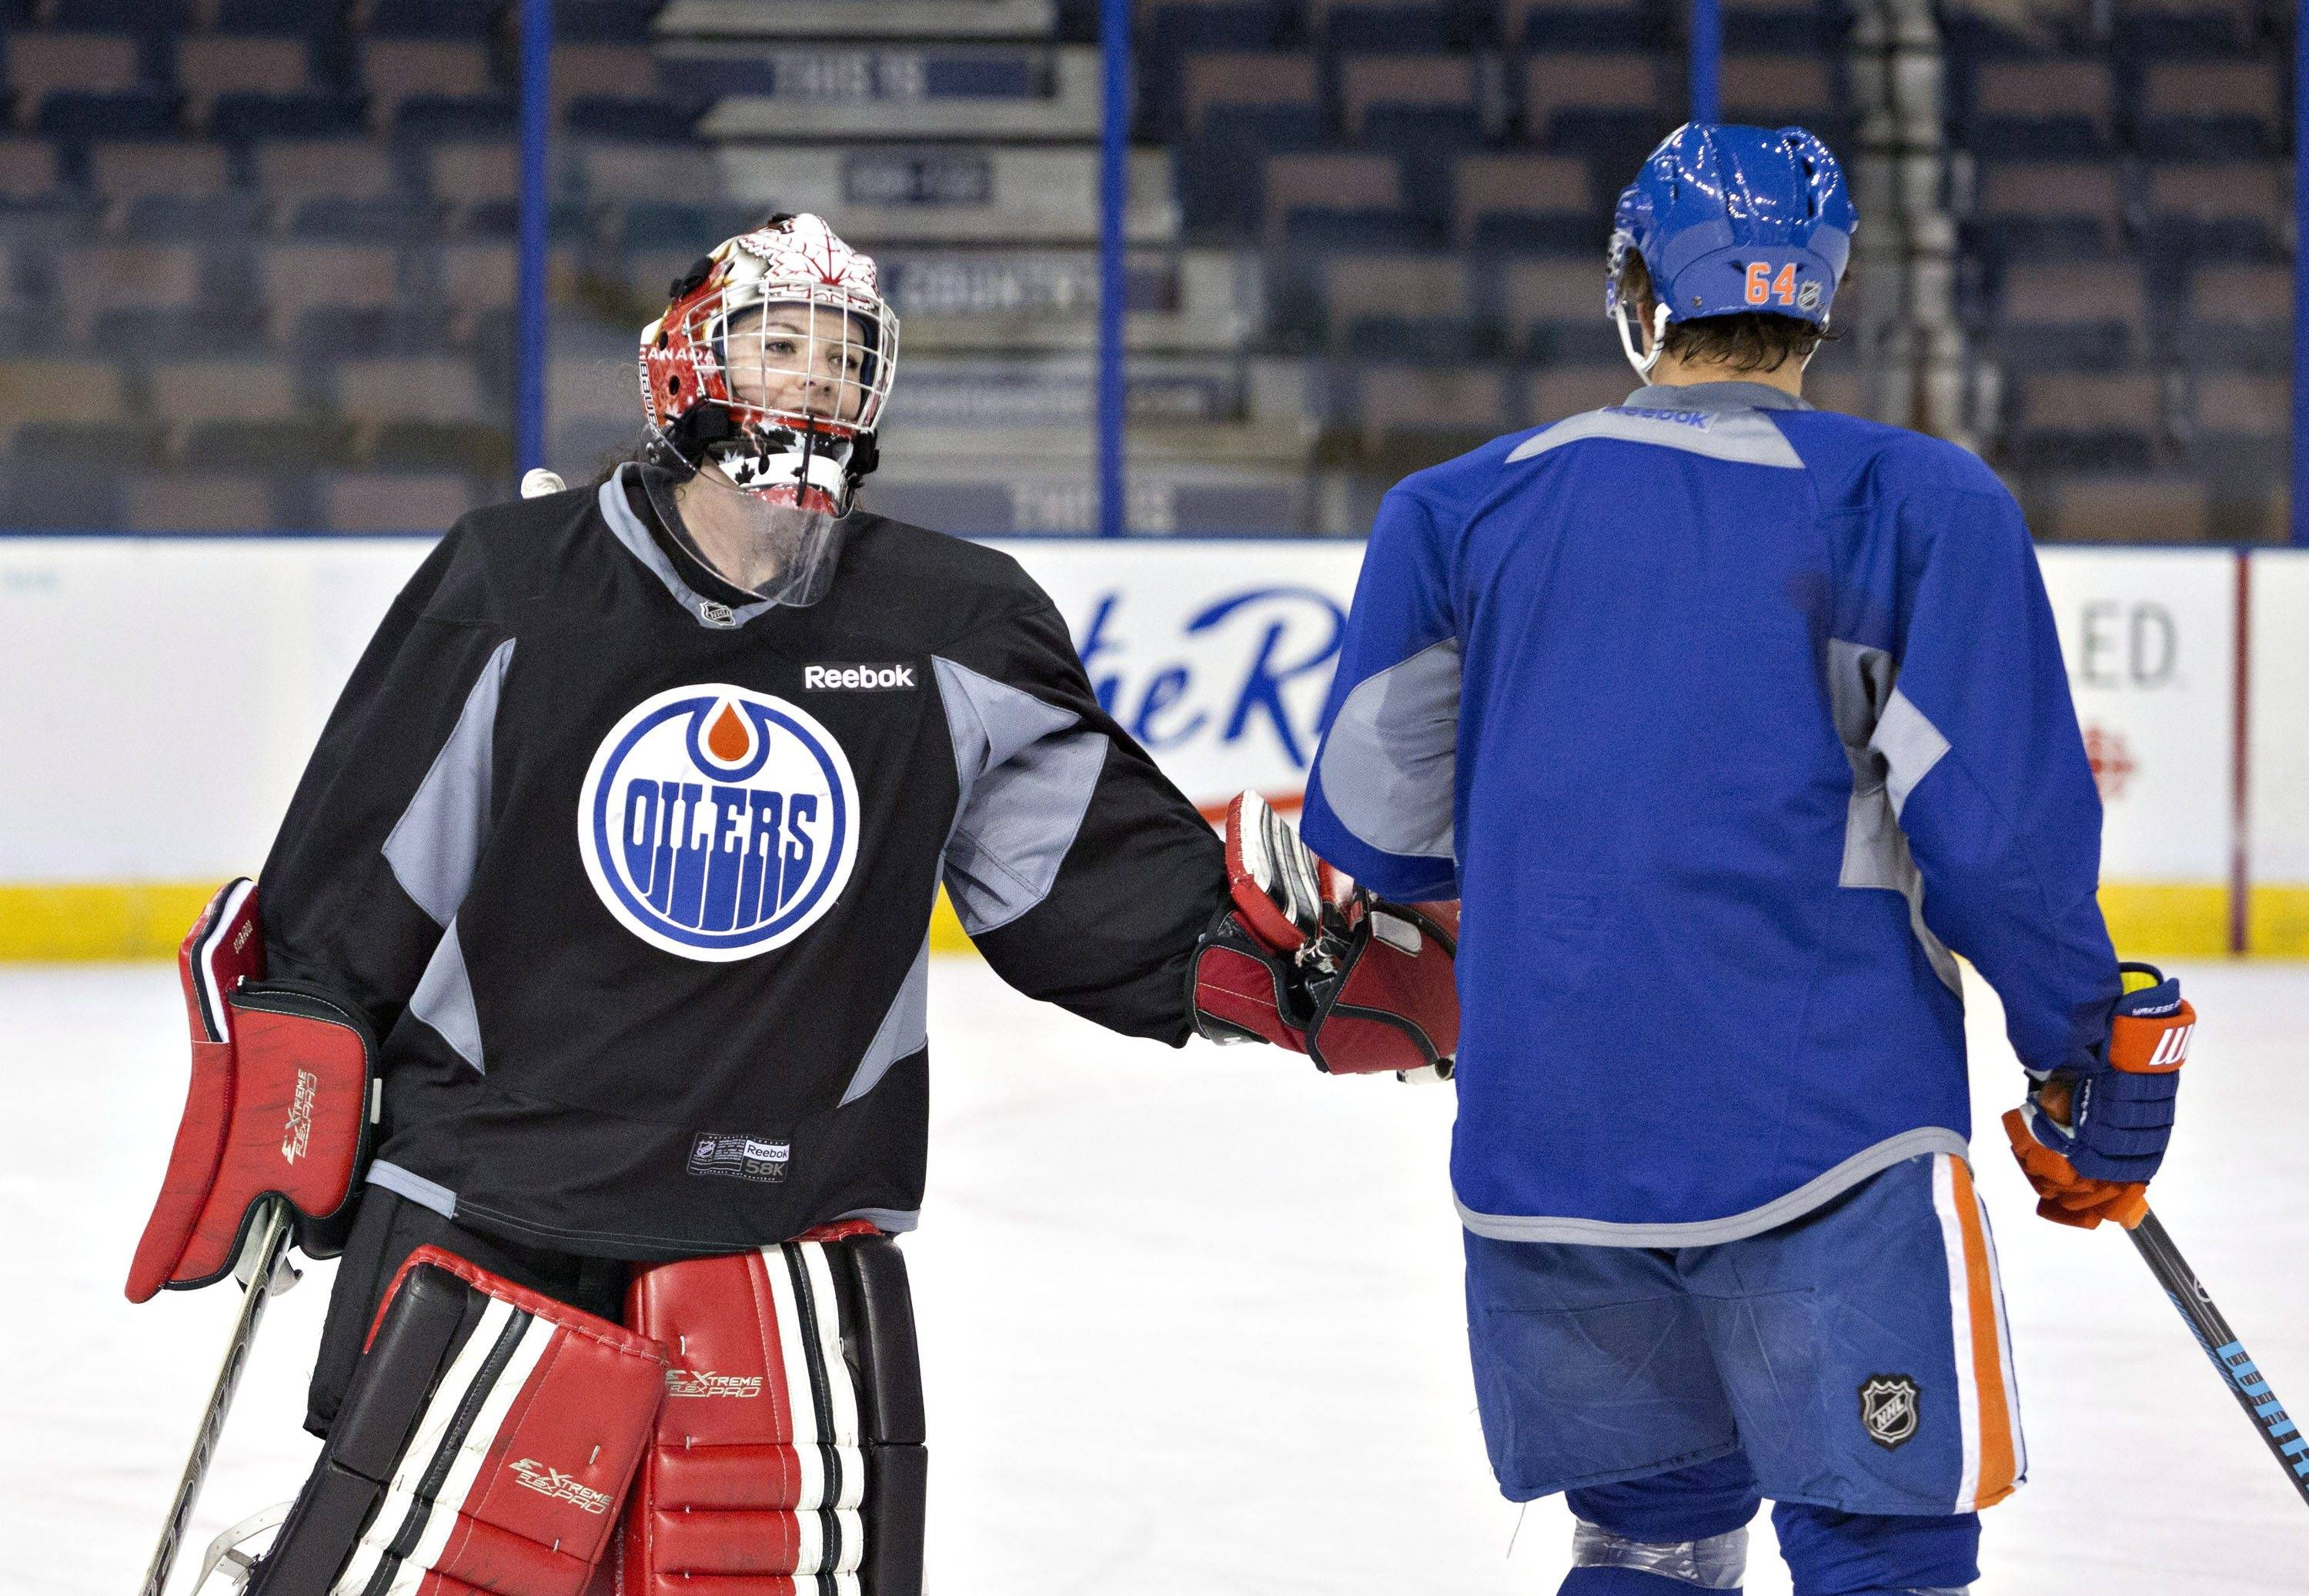 Canadian Olympic women's team goalie Shannon Szabados gives a low-five to Nail Yakupov during practice with the Edmonton Oilers NHL hockey team in Edmonton, Alberta, Wednesday, March 5, 2014.